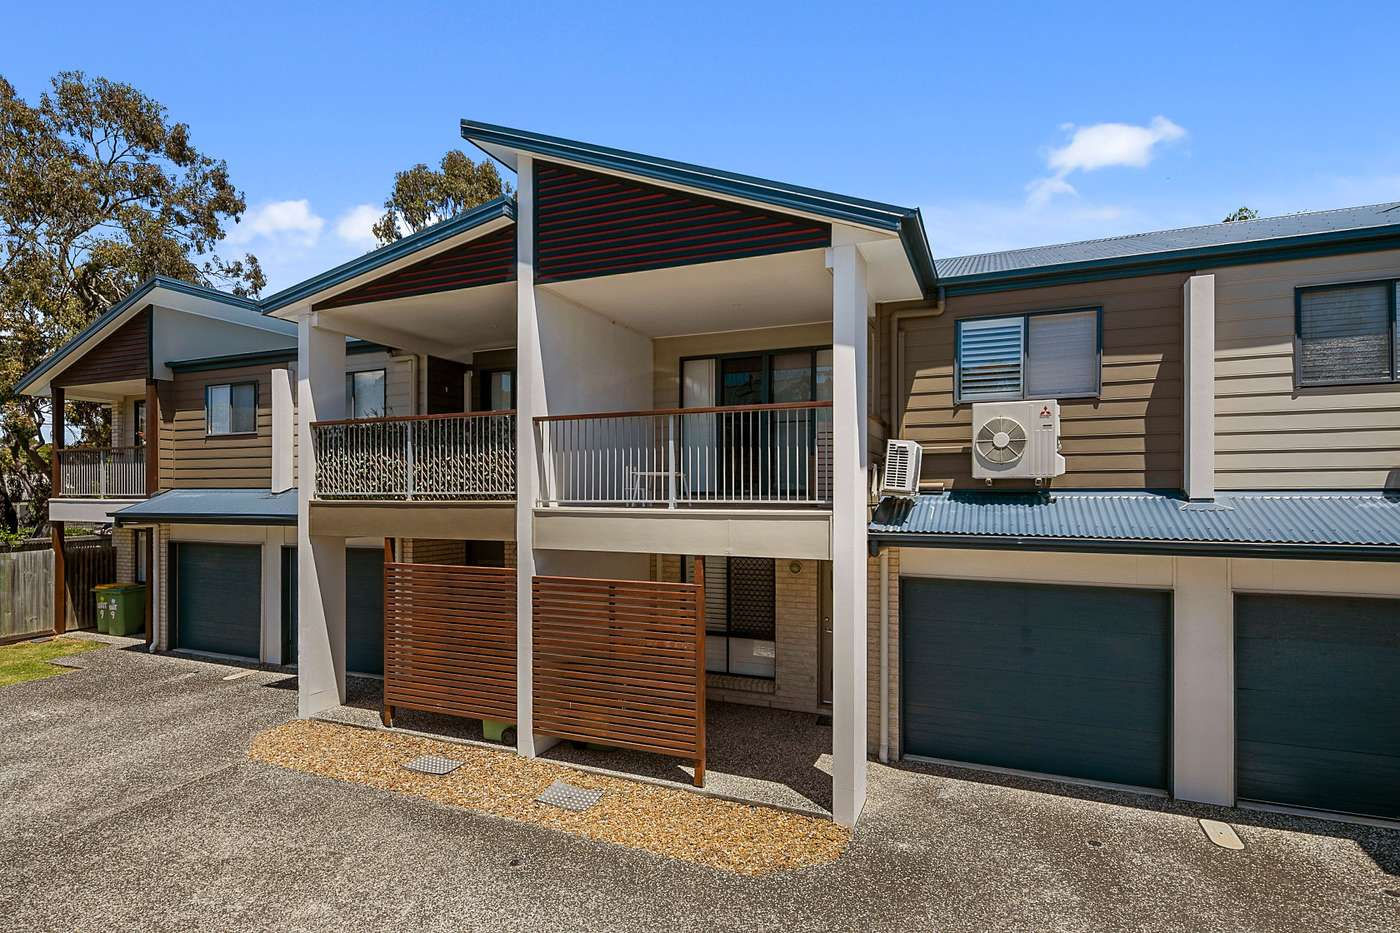 Main view of Homely townhouse listing, 11/8-18 Bailey Road, Birkdale, QLD 4159